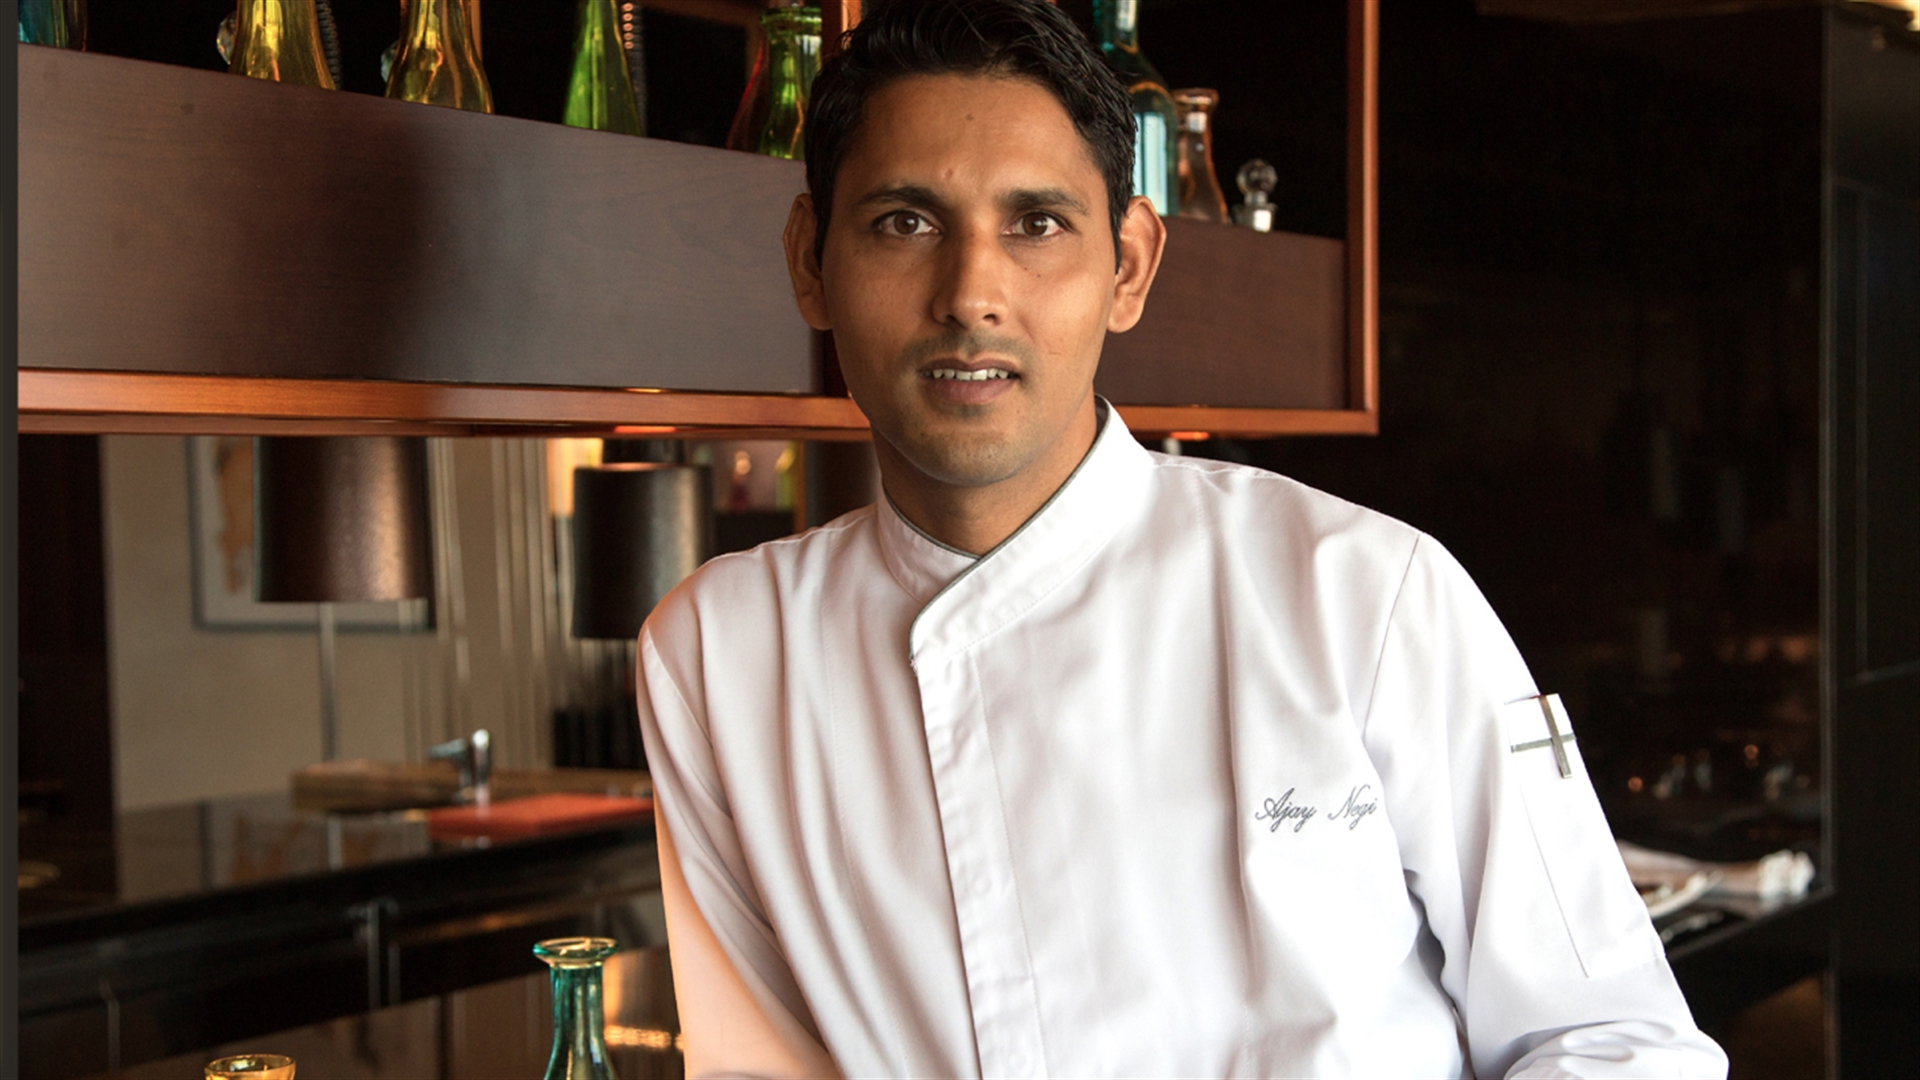 Chef ajay negi bombay brasserie for Ajays catering cuisine